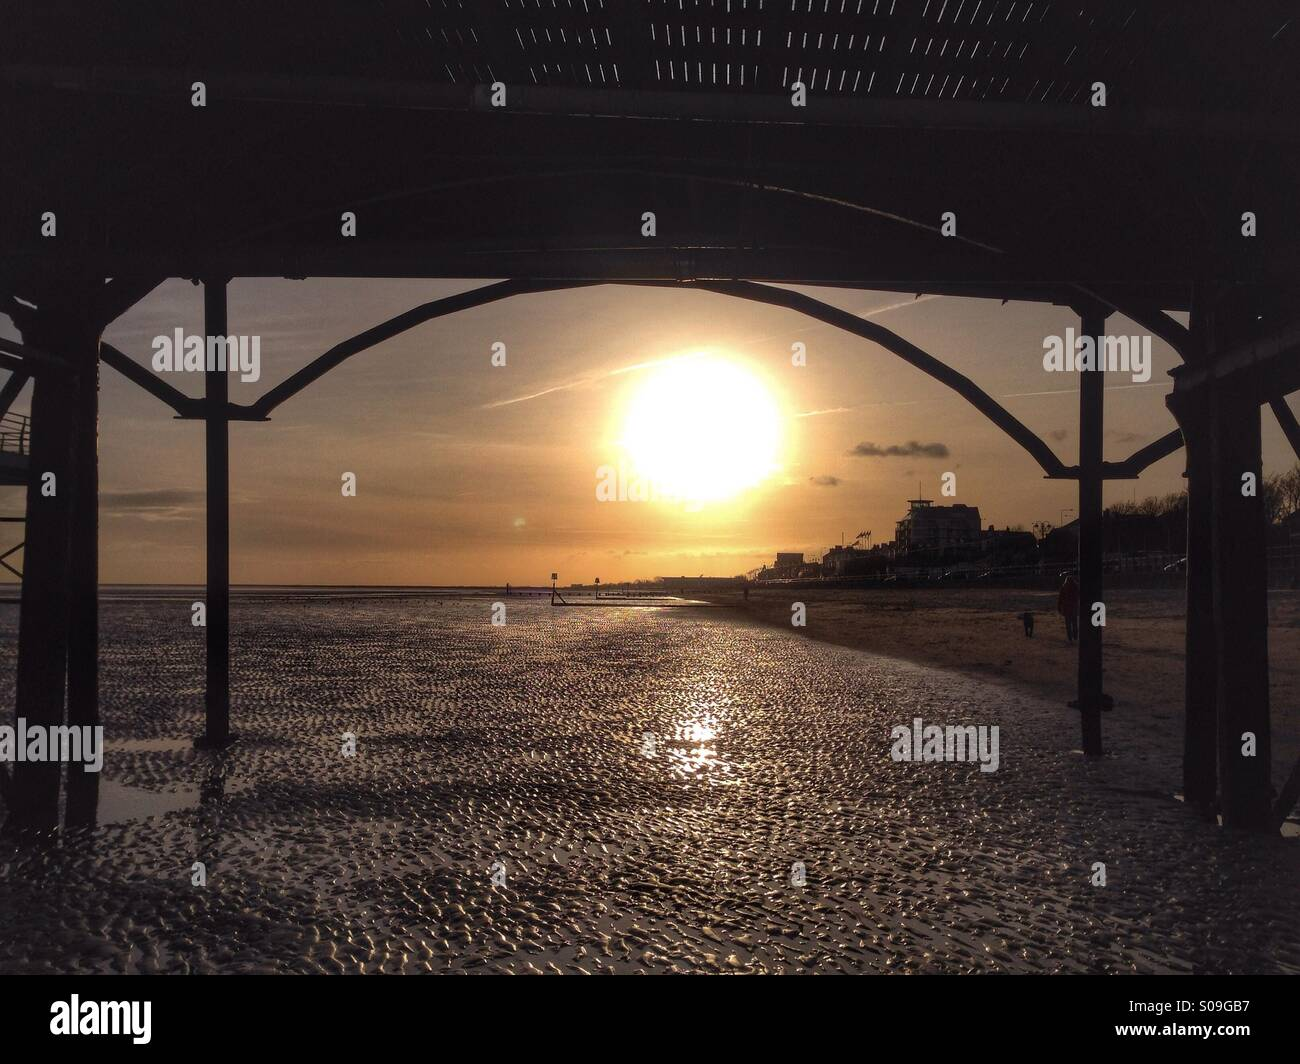 Sunrise seen from underneath a pier. - Stock Image